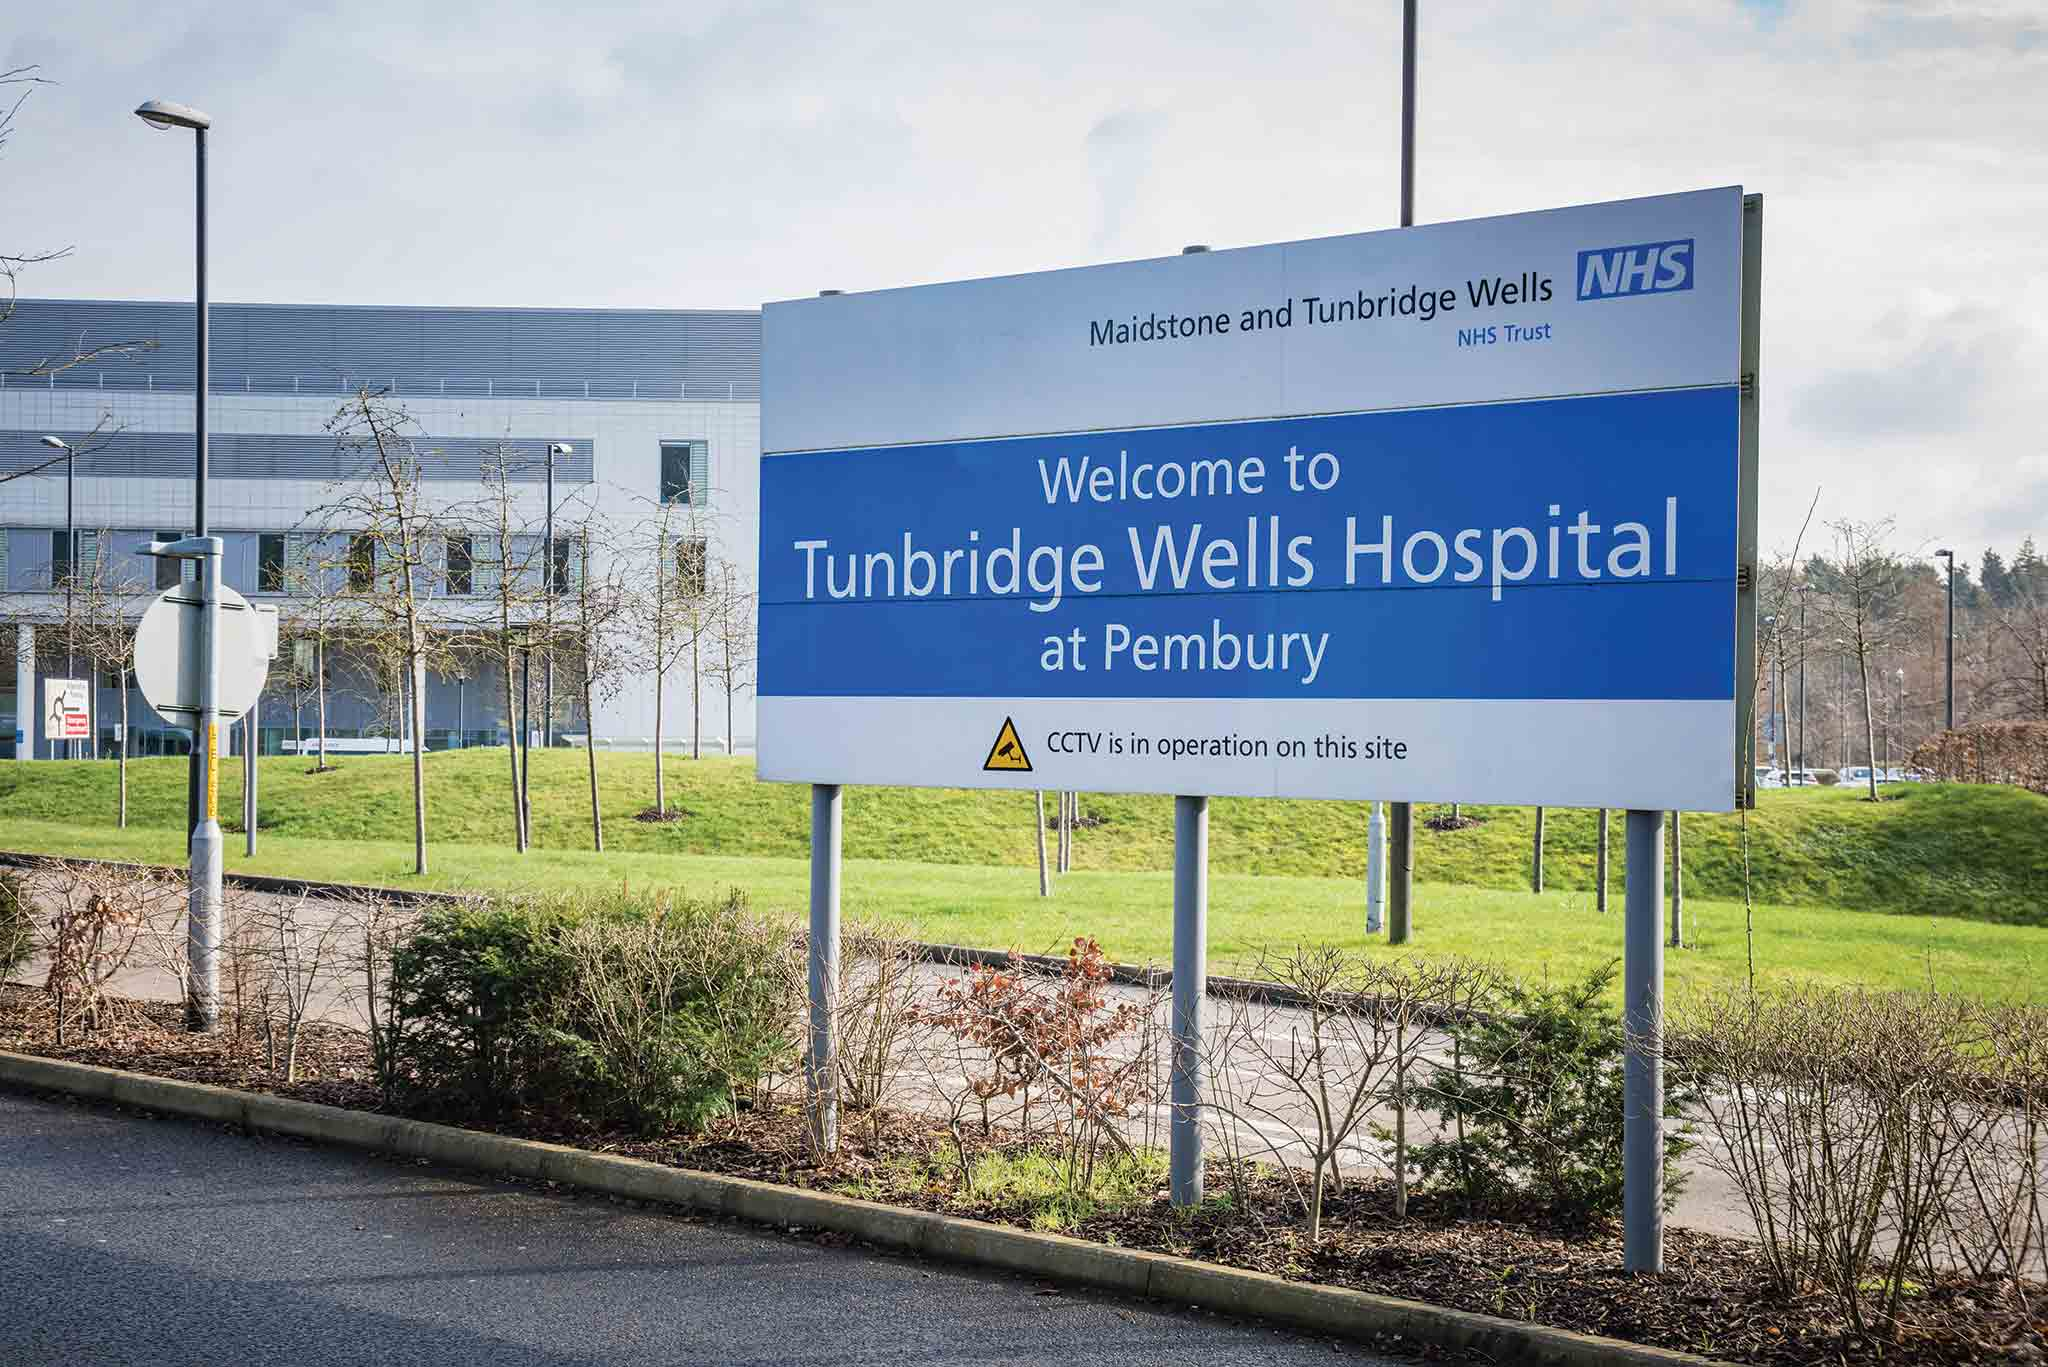 Tunbridge Wells Hospital at Pembury